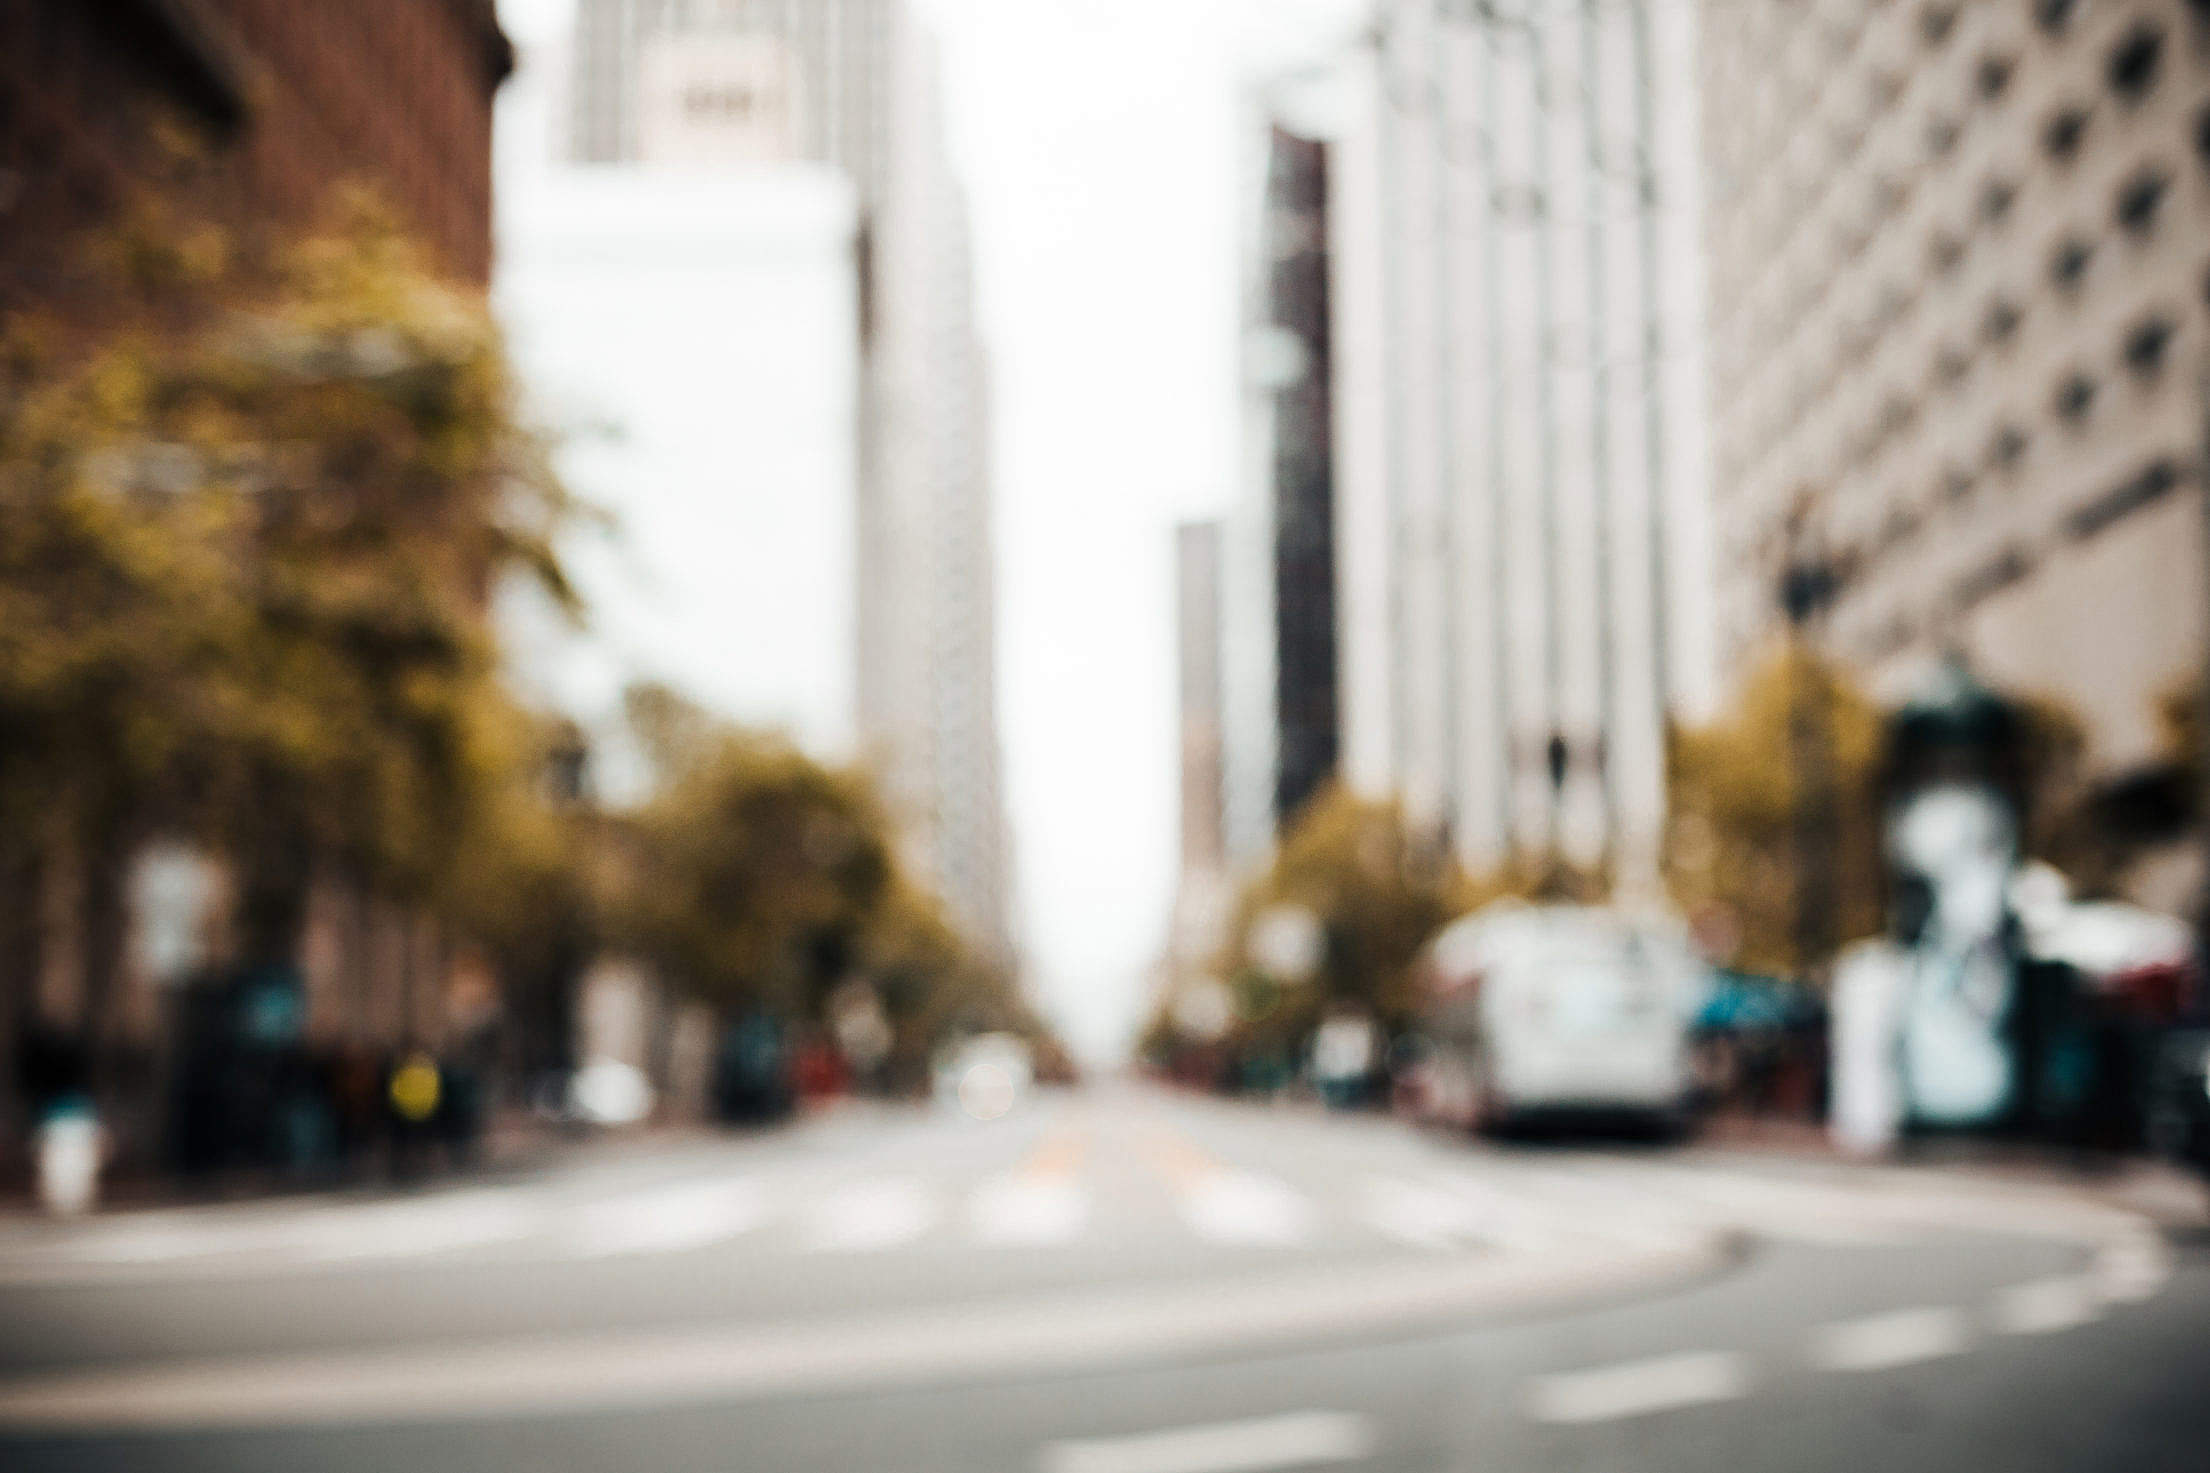 Download Random San Francisco Street Blurred Background Free Stock Photo